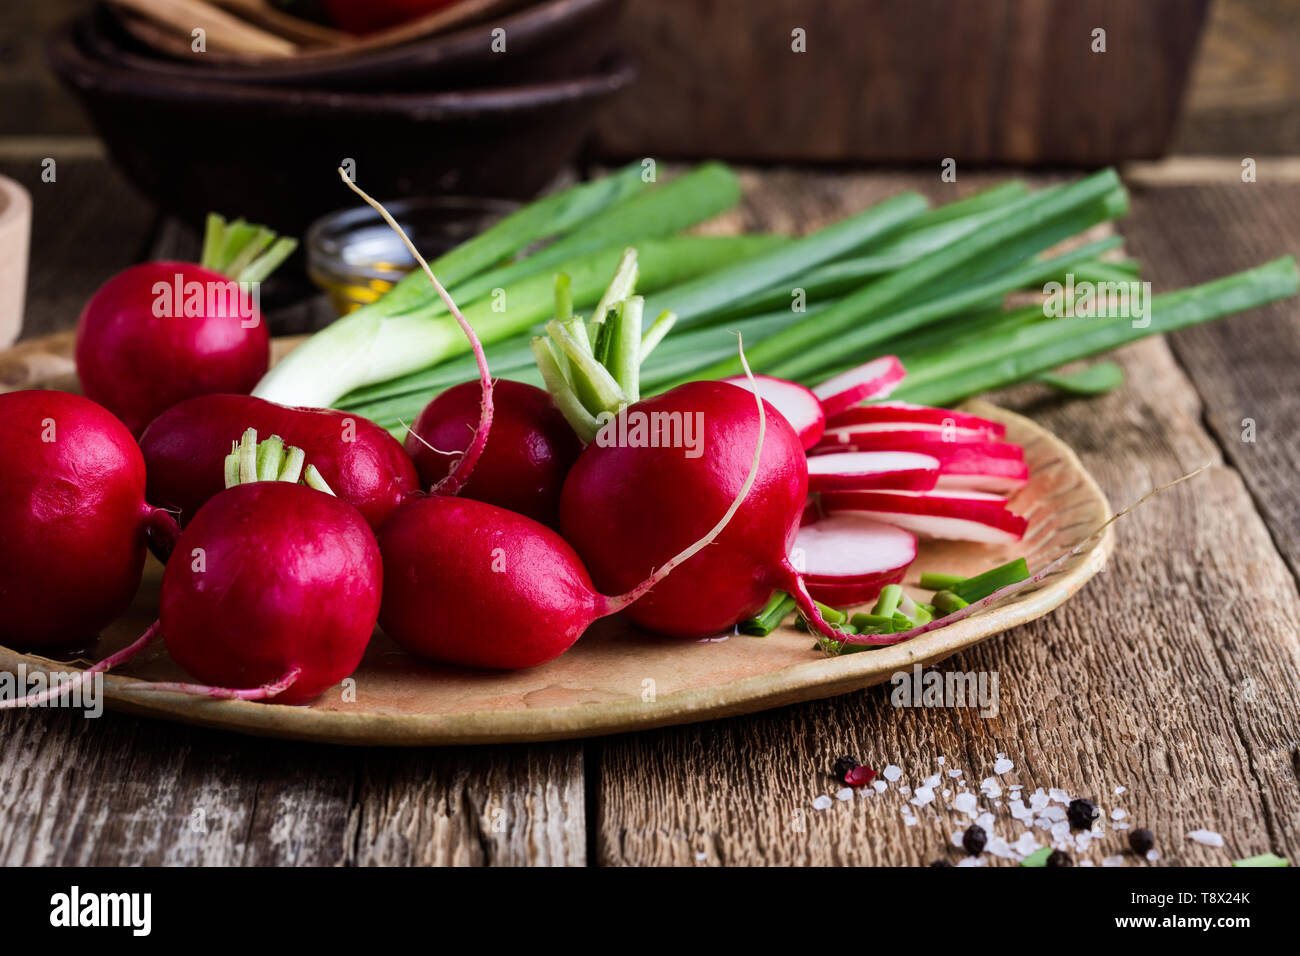 Fresh springtime radishes, green onion and garlic on rustic wooden background, plant based food cooking  ingredients, close up, selective focus Stock Photo